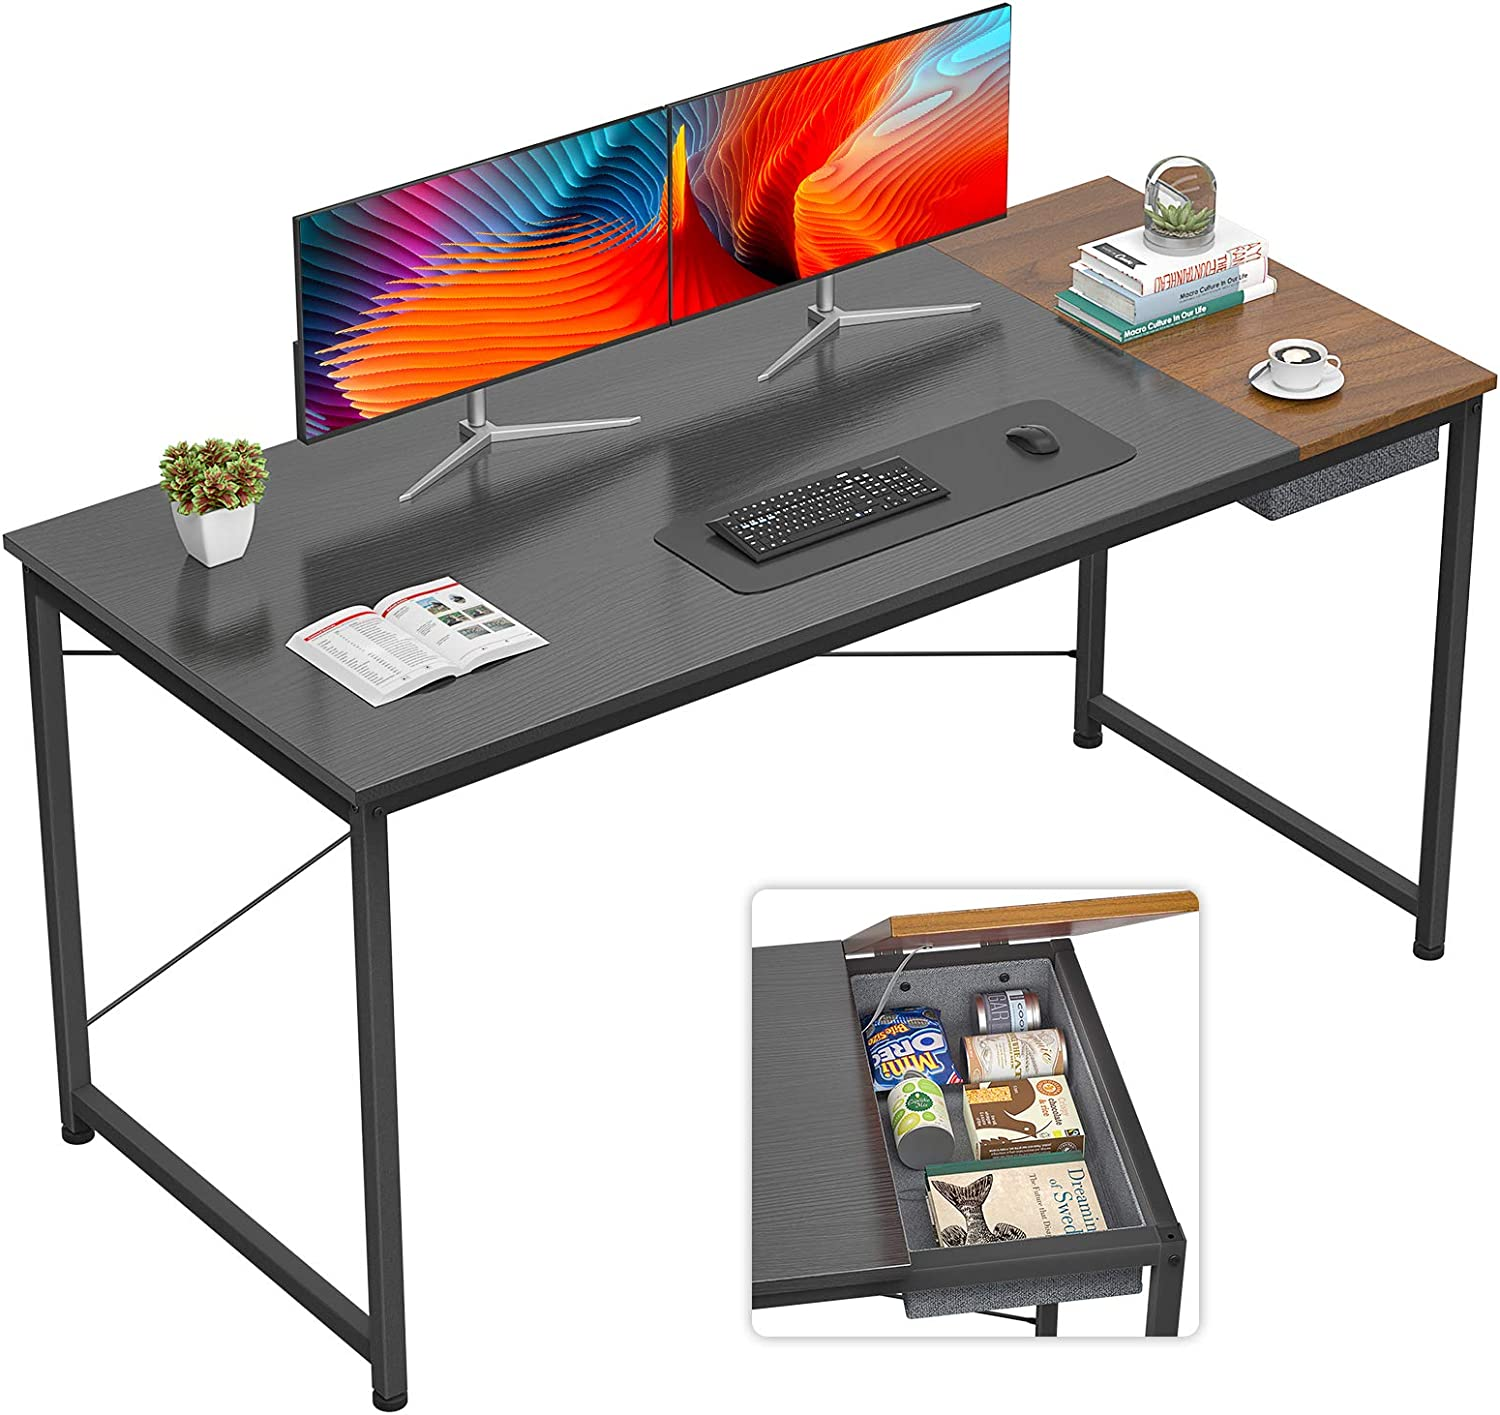 Foxemart Computer Desk, 55 Inch Study Writing Desk for Home Office Workstation, Modern Simple Style Laptop Table with Storage Bag/Drawer, Black and Espresso